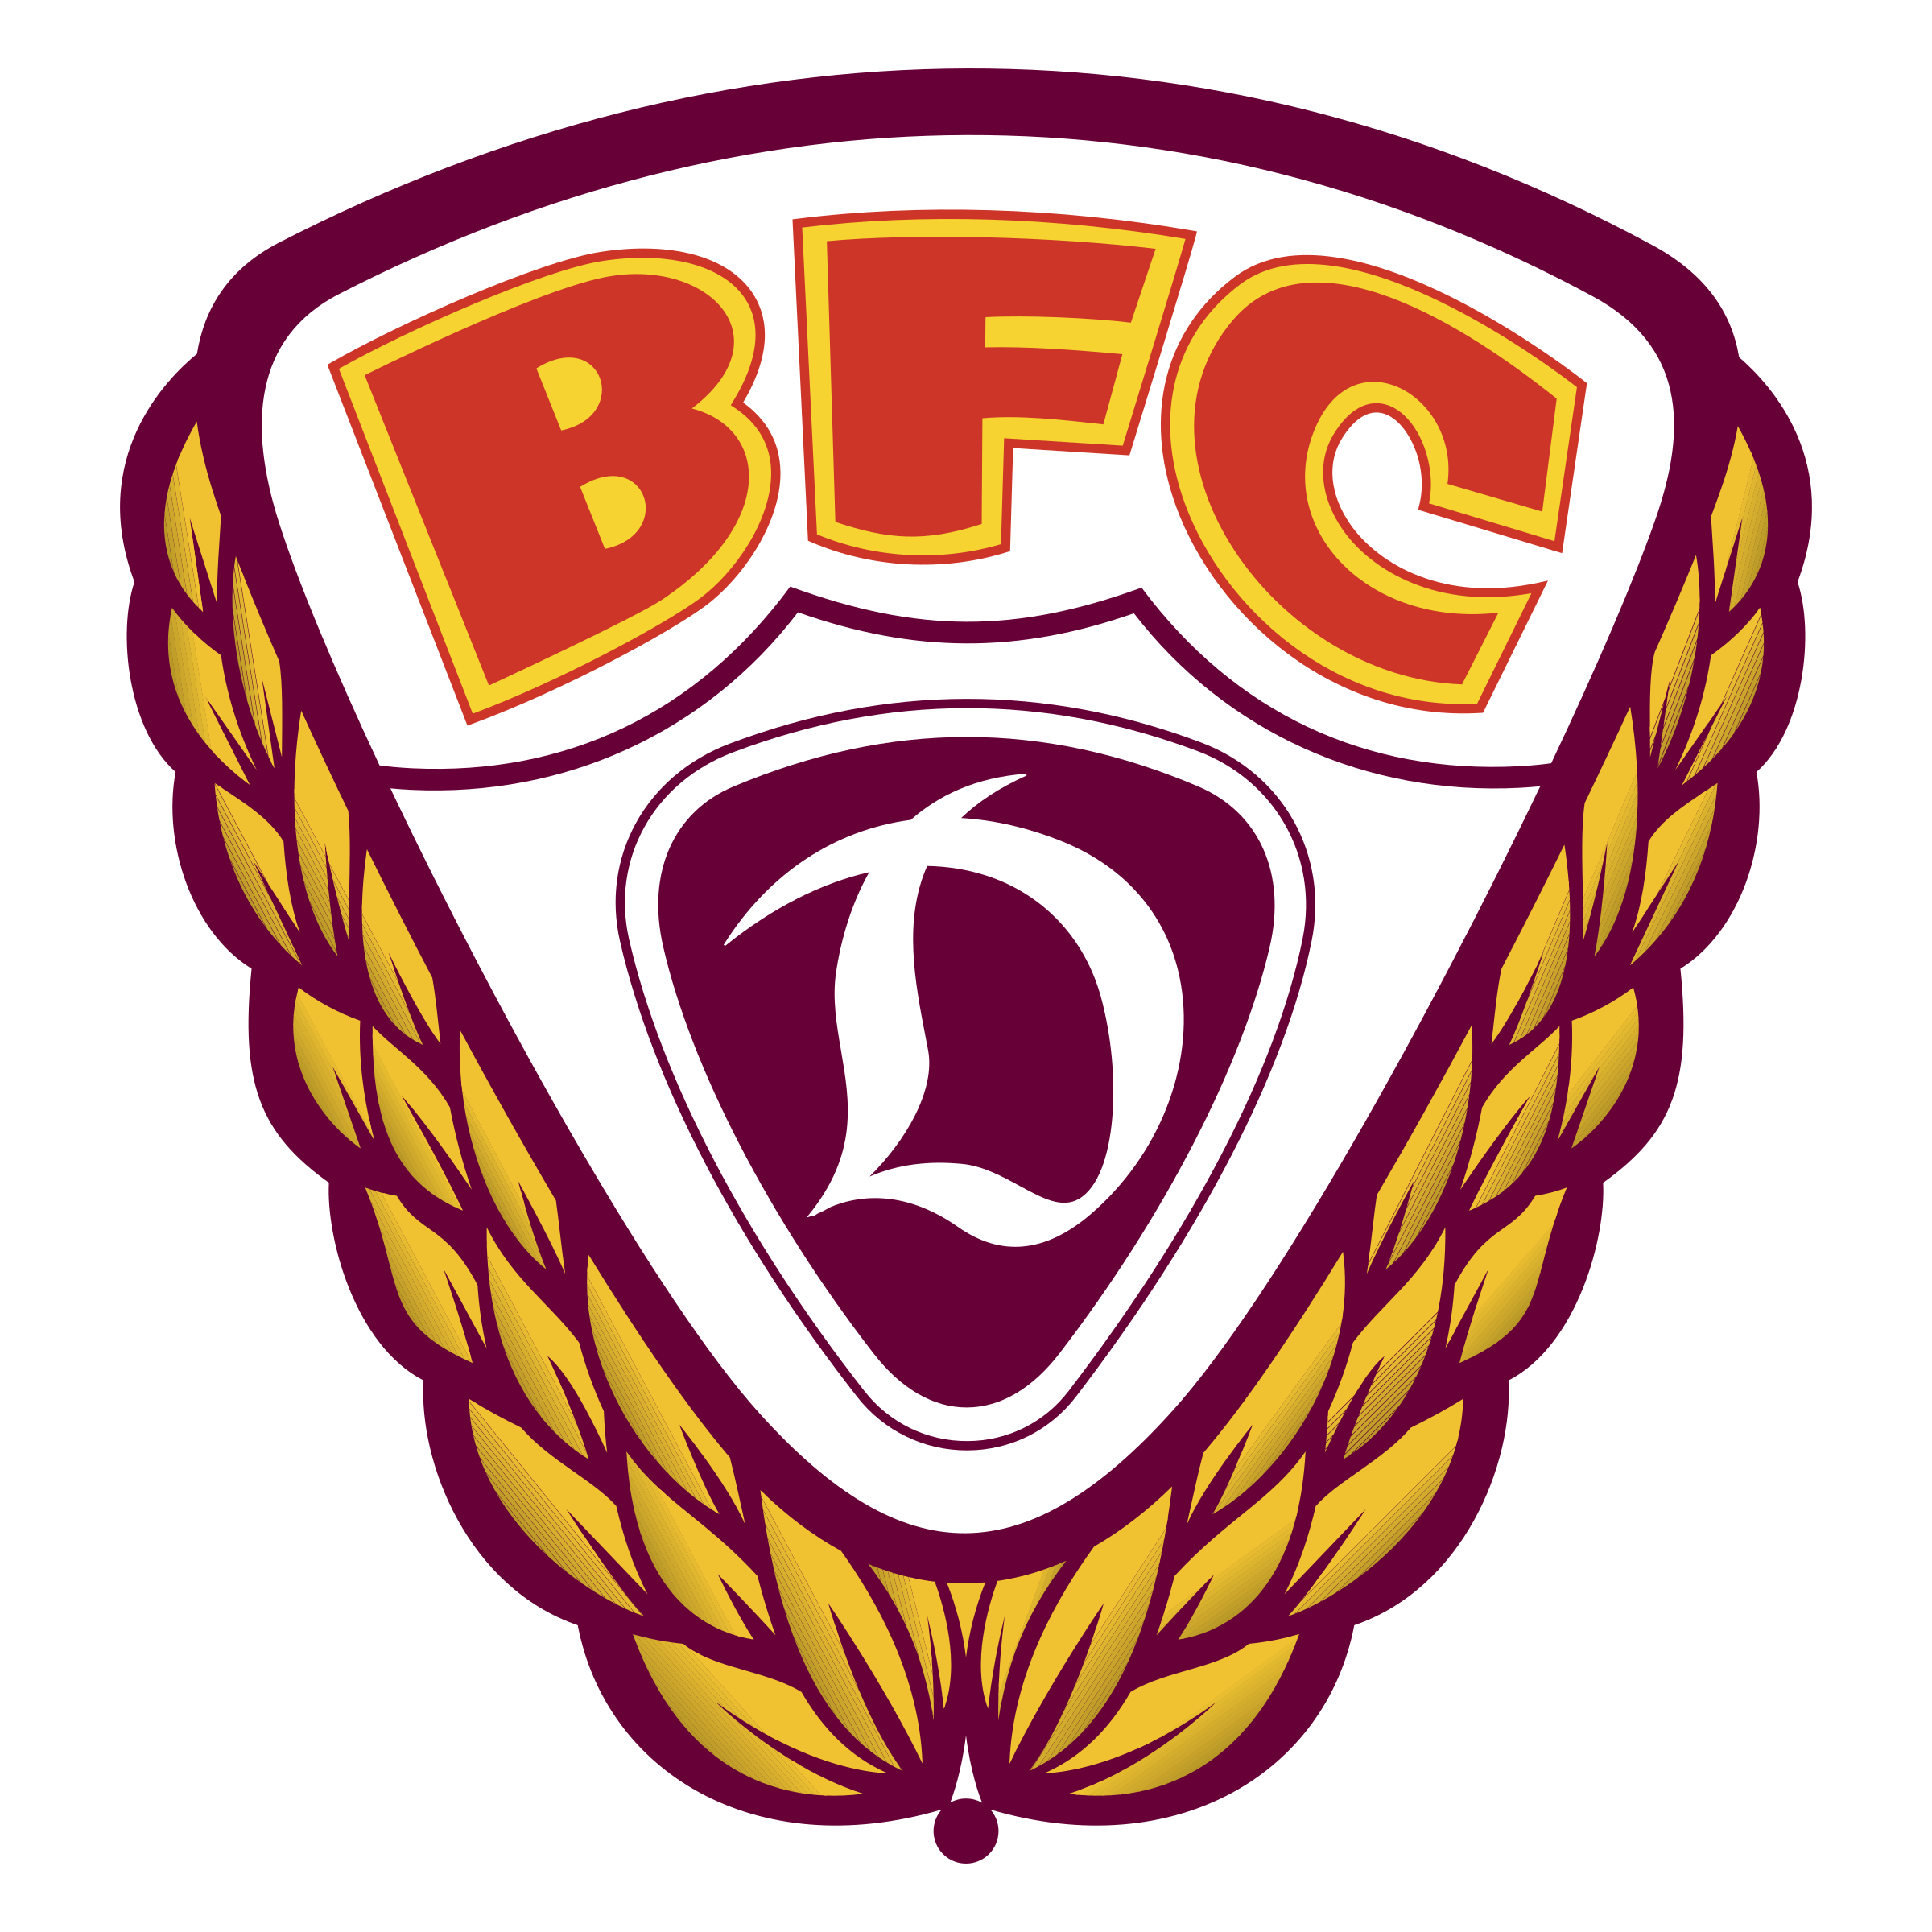 https://cdn.freebiesupply.com/logos/large/2x/bfc-dynamo-berlin-logo-png-transparent.png